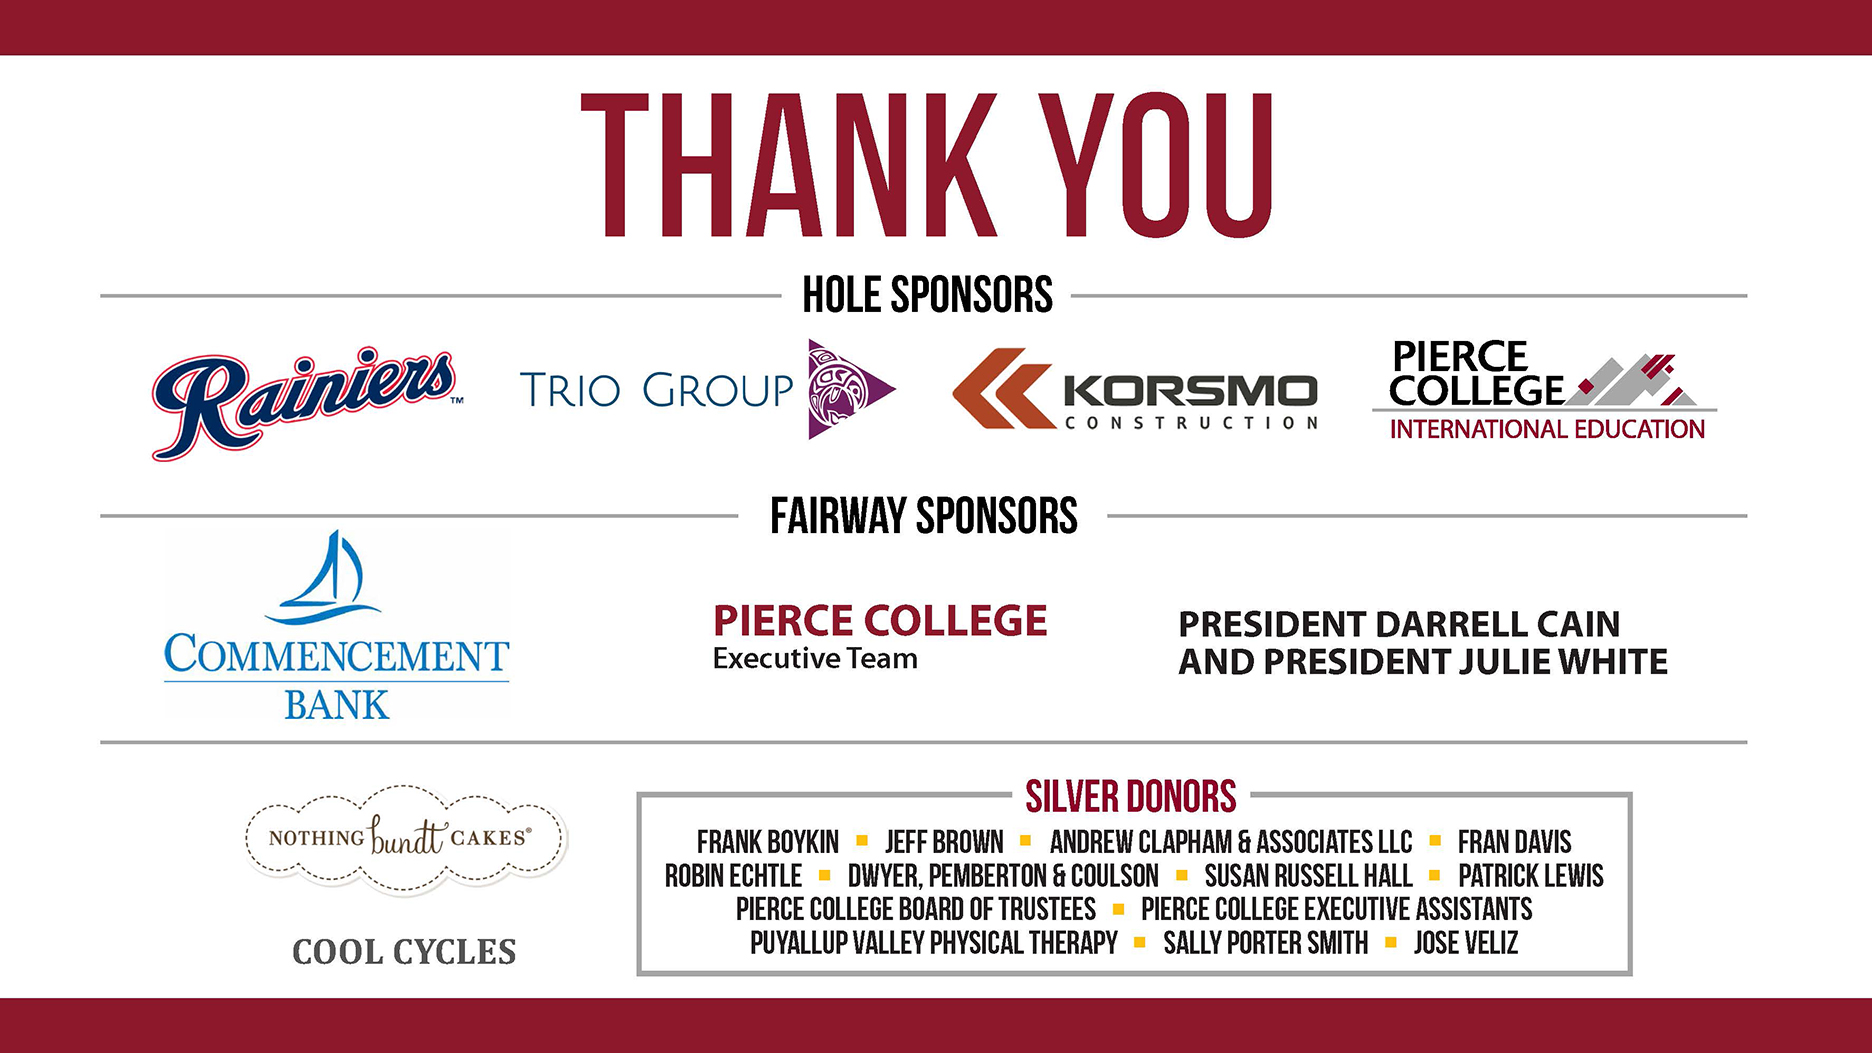 Thank You to Rainers, Trio Group, Korsmo Construction, Pierce College International Education, Commencement Bank, Pierce College Executive Team, Presidents Darrell Cain and Julie White, Nothing Bundt Cakes, Cool Cycles, Frank Boykin, Jeff Brown, Andrew Clapham & Associates, Fran Davis, Robin Echtle, Dwyer, Pemberton & Coulson, Susan Russell Hall, Patrick Lewis, Pierce College Board of Trustees, Pierce College Executive Assistants, Puyallup Valley Physical Therapy, Sally Porter Smith, and Jose Veliz